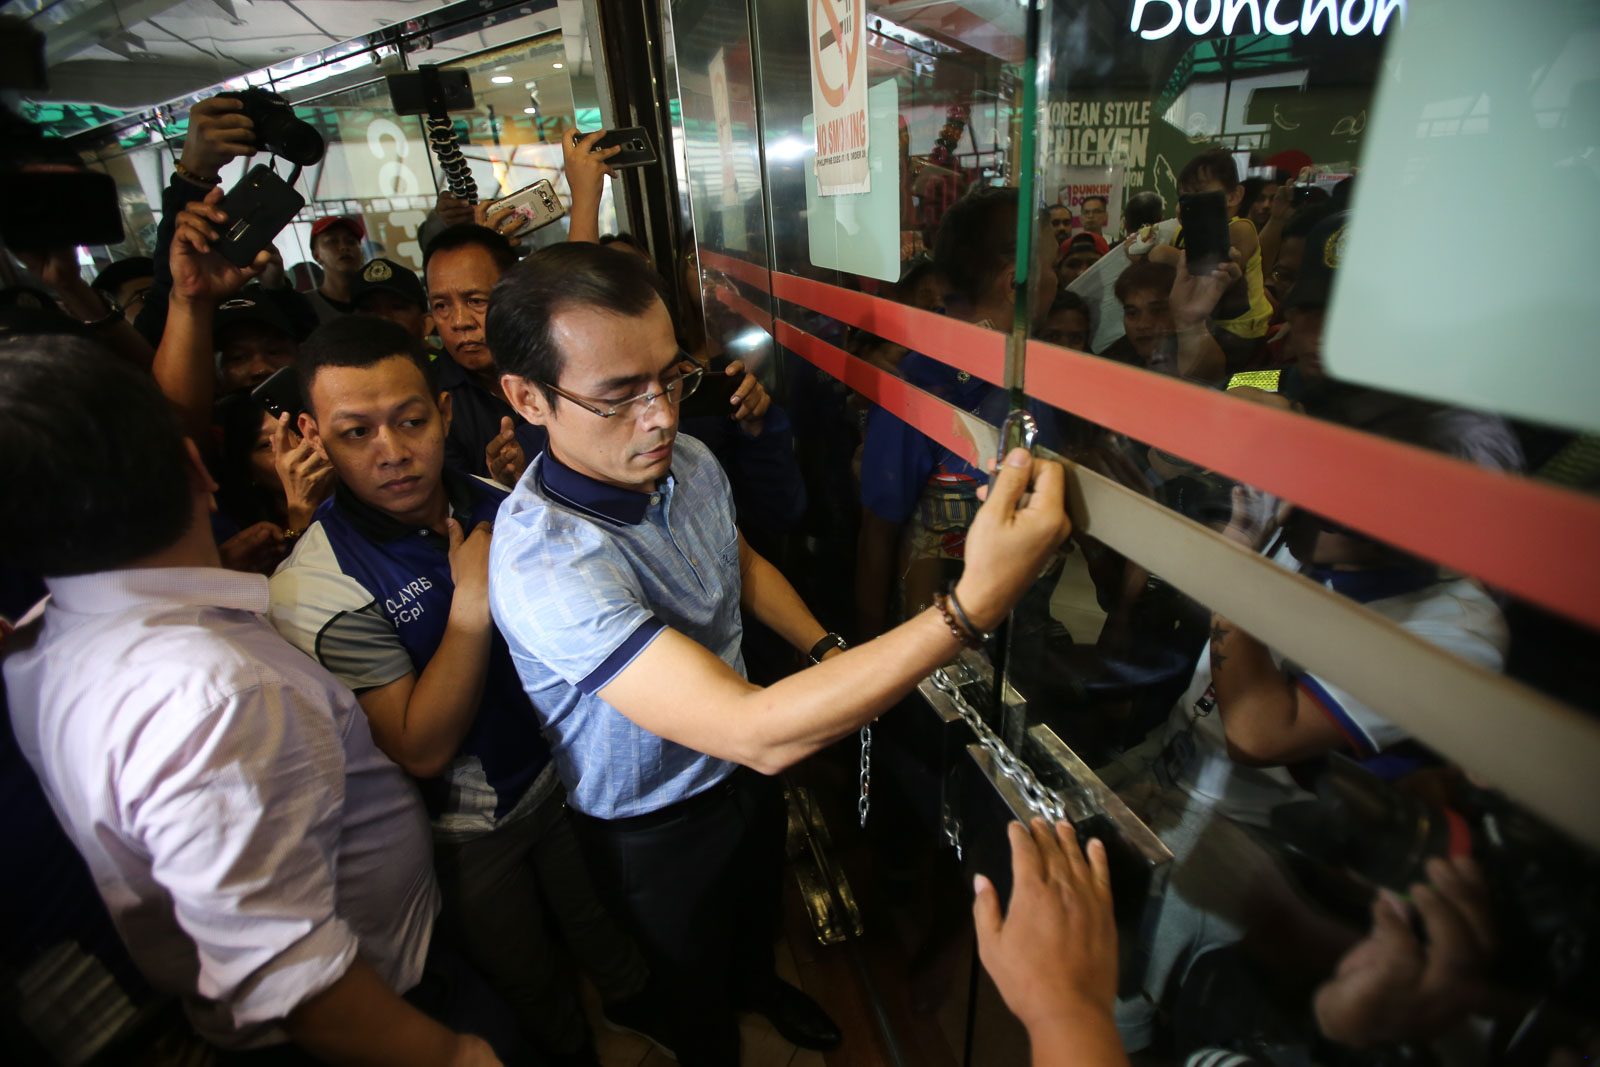 CLOSING ISETANN. Manila Mayor Isko Moreno serves a closure order for the Isetann mall in Recto, Manila on October 9, 2019. Photo by Inoue Jaena/Rappler